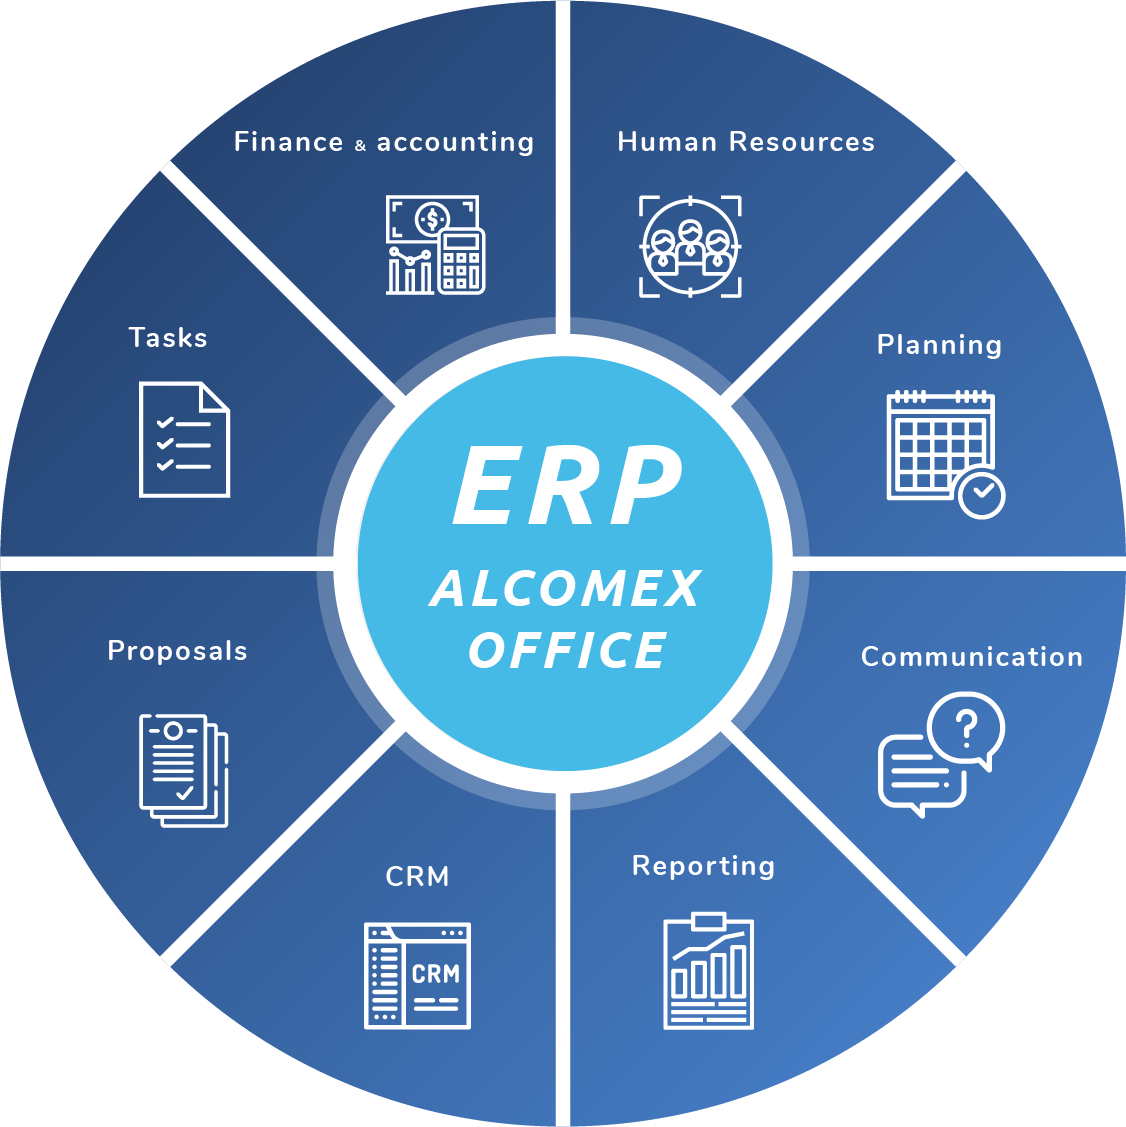 Modules of Alcomex Office ERP system: Human Resources, Planning, Comunication, Reporting, CRM, Proposals, Tasks, Finance + Accounting